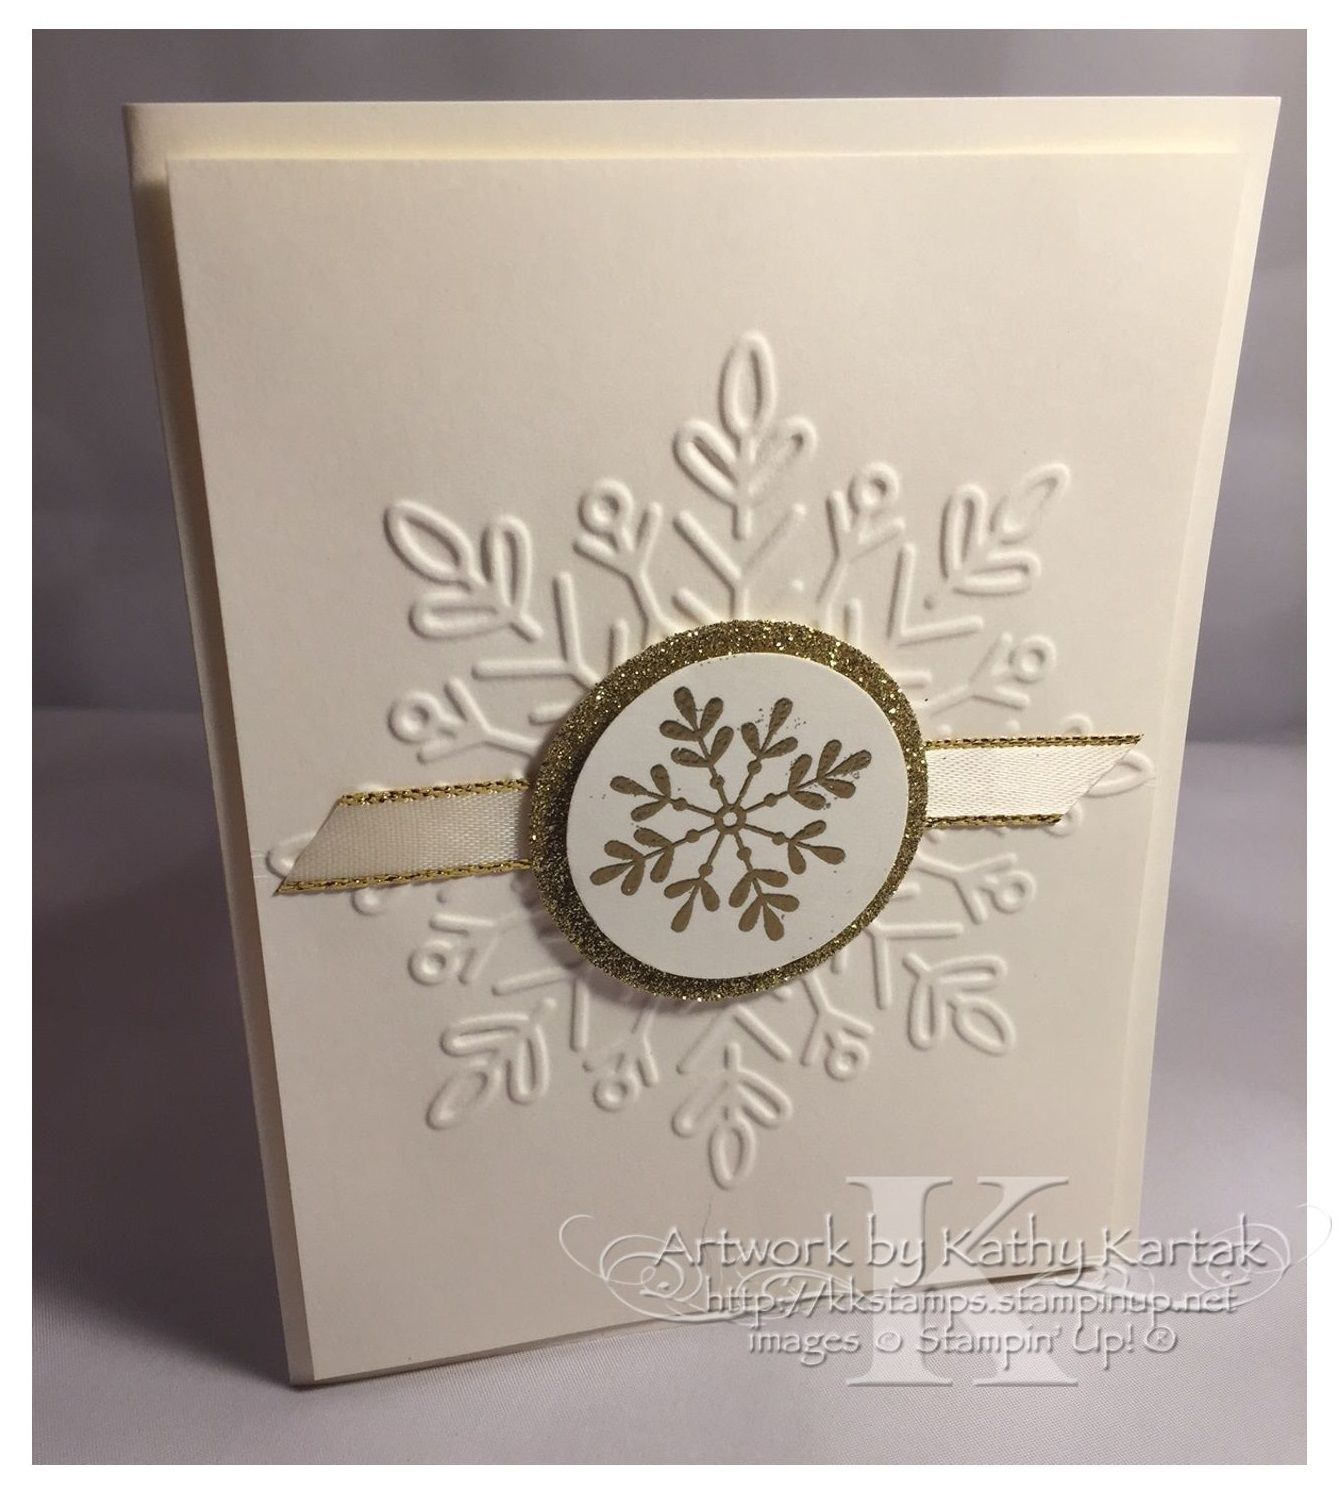 Sparkling Snowflake -    #stampinup #faithfulinkspirations When I saw the Winter Wonder Textured Impressions Folder in the Stampin' Up catalog, I knew I had to h…  Sparkling Snowflake  Elizabeth Starr estarr10 Christmas cards #stampinup #faithfulinkspirations When I saw the Winter Wonder Textured Impressions Folder in the Stampin' Up catalog, I knew I had to h…  Elizabeth Starr  #stampinup #faithfulinkspirations When I saw the Winter Wonder Textured Impressions Folder in the Stampin' Up catalog